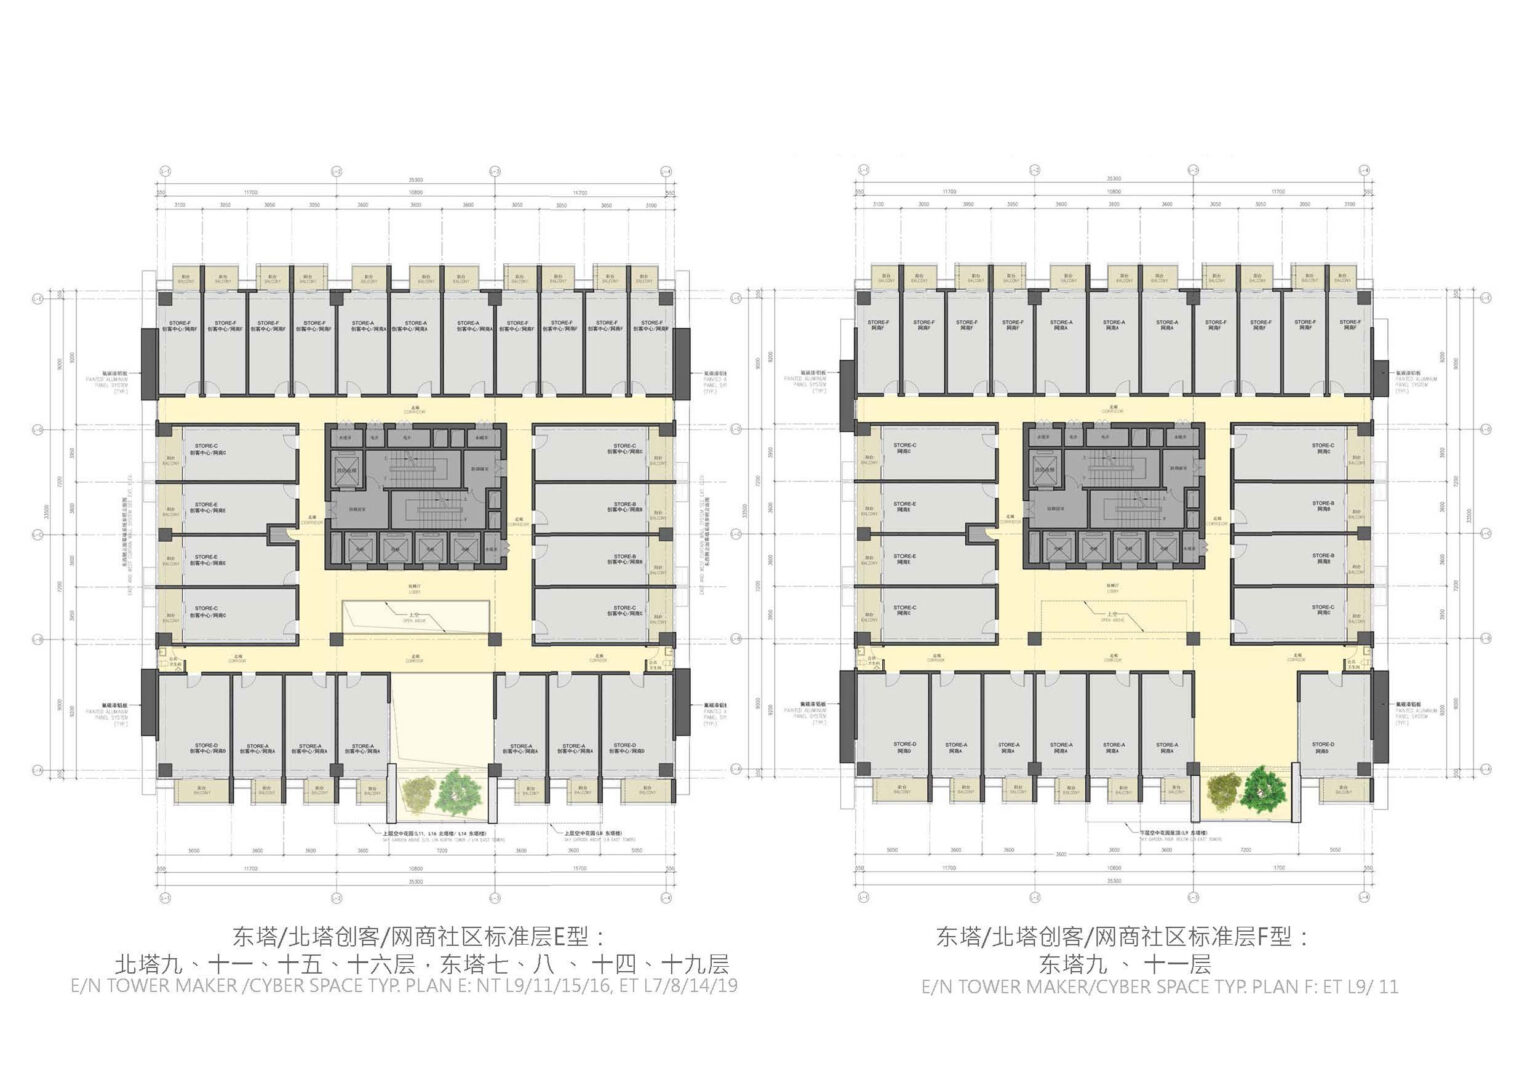 1503_sd_east__north_tower_typ_floor_plan